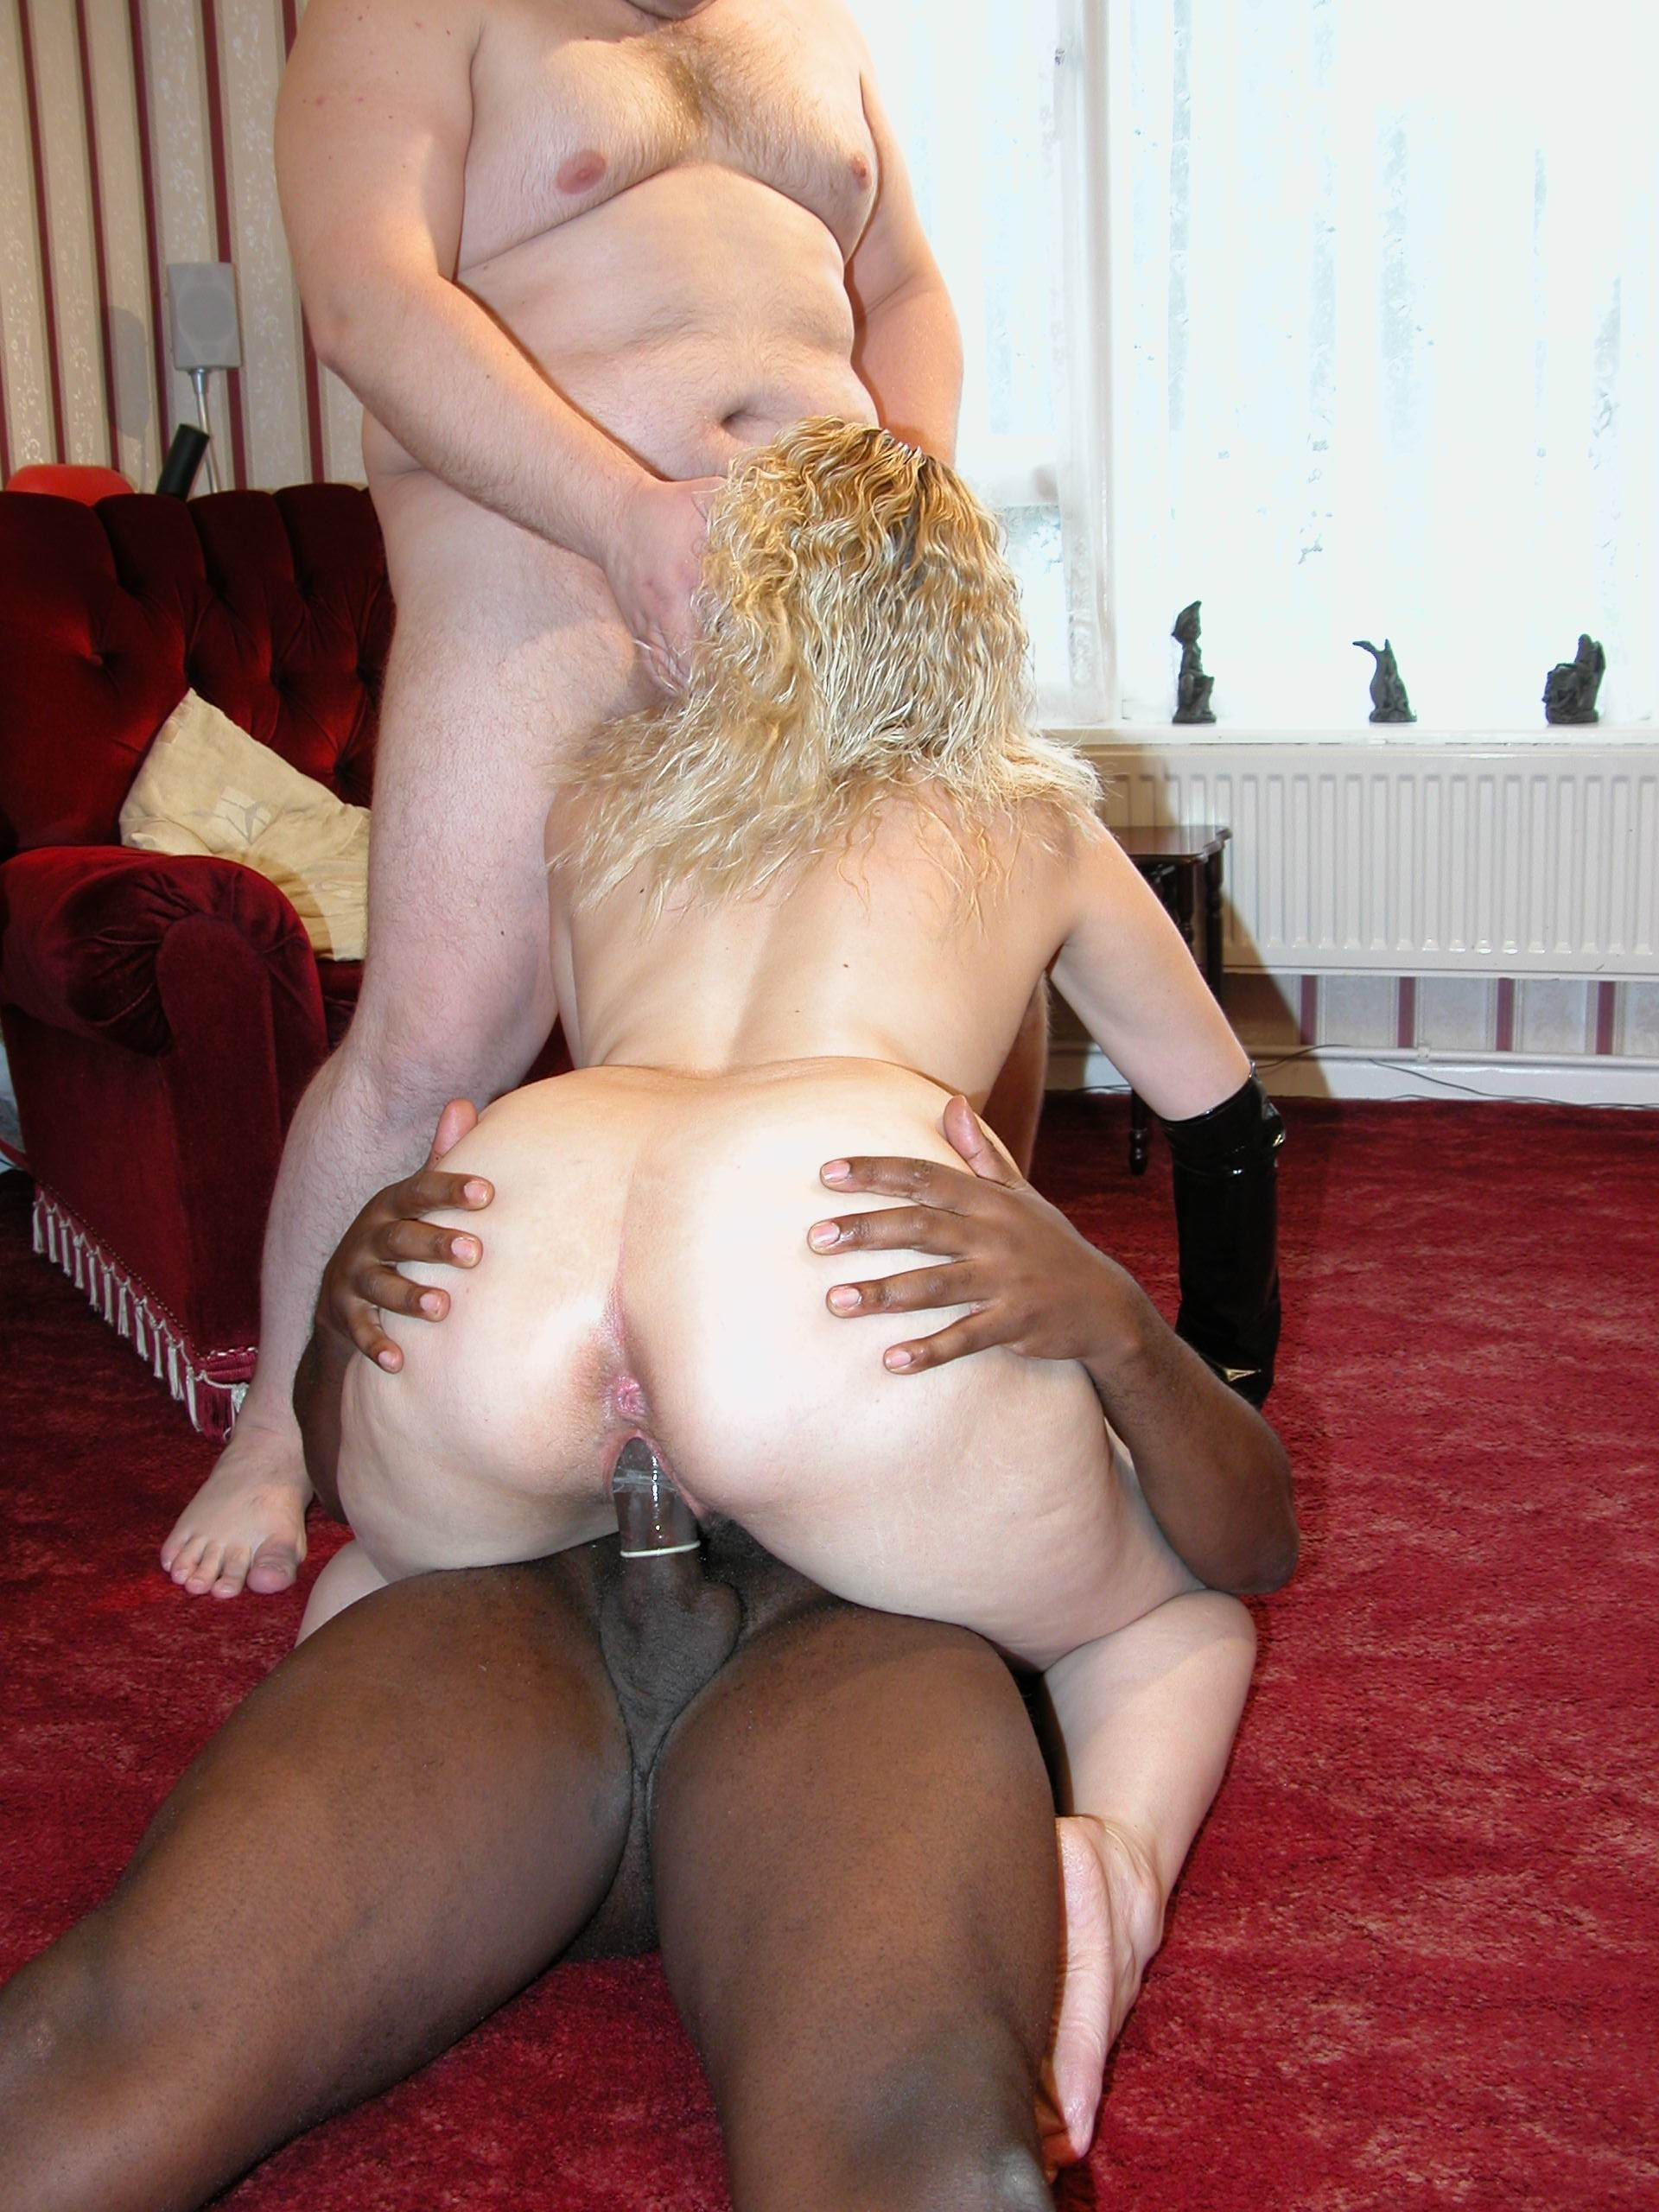 Ebony milf beauties who cheat